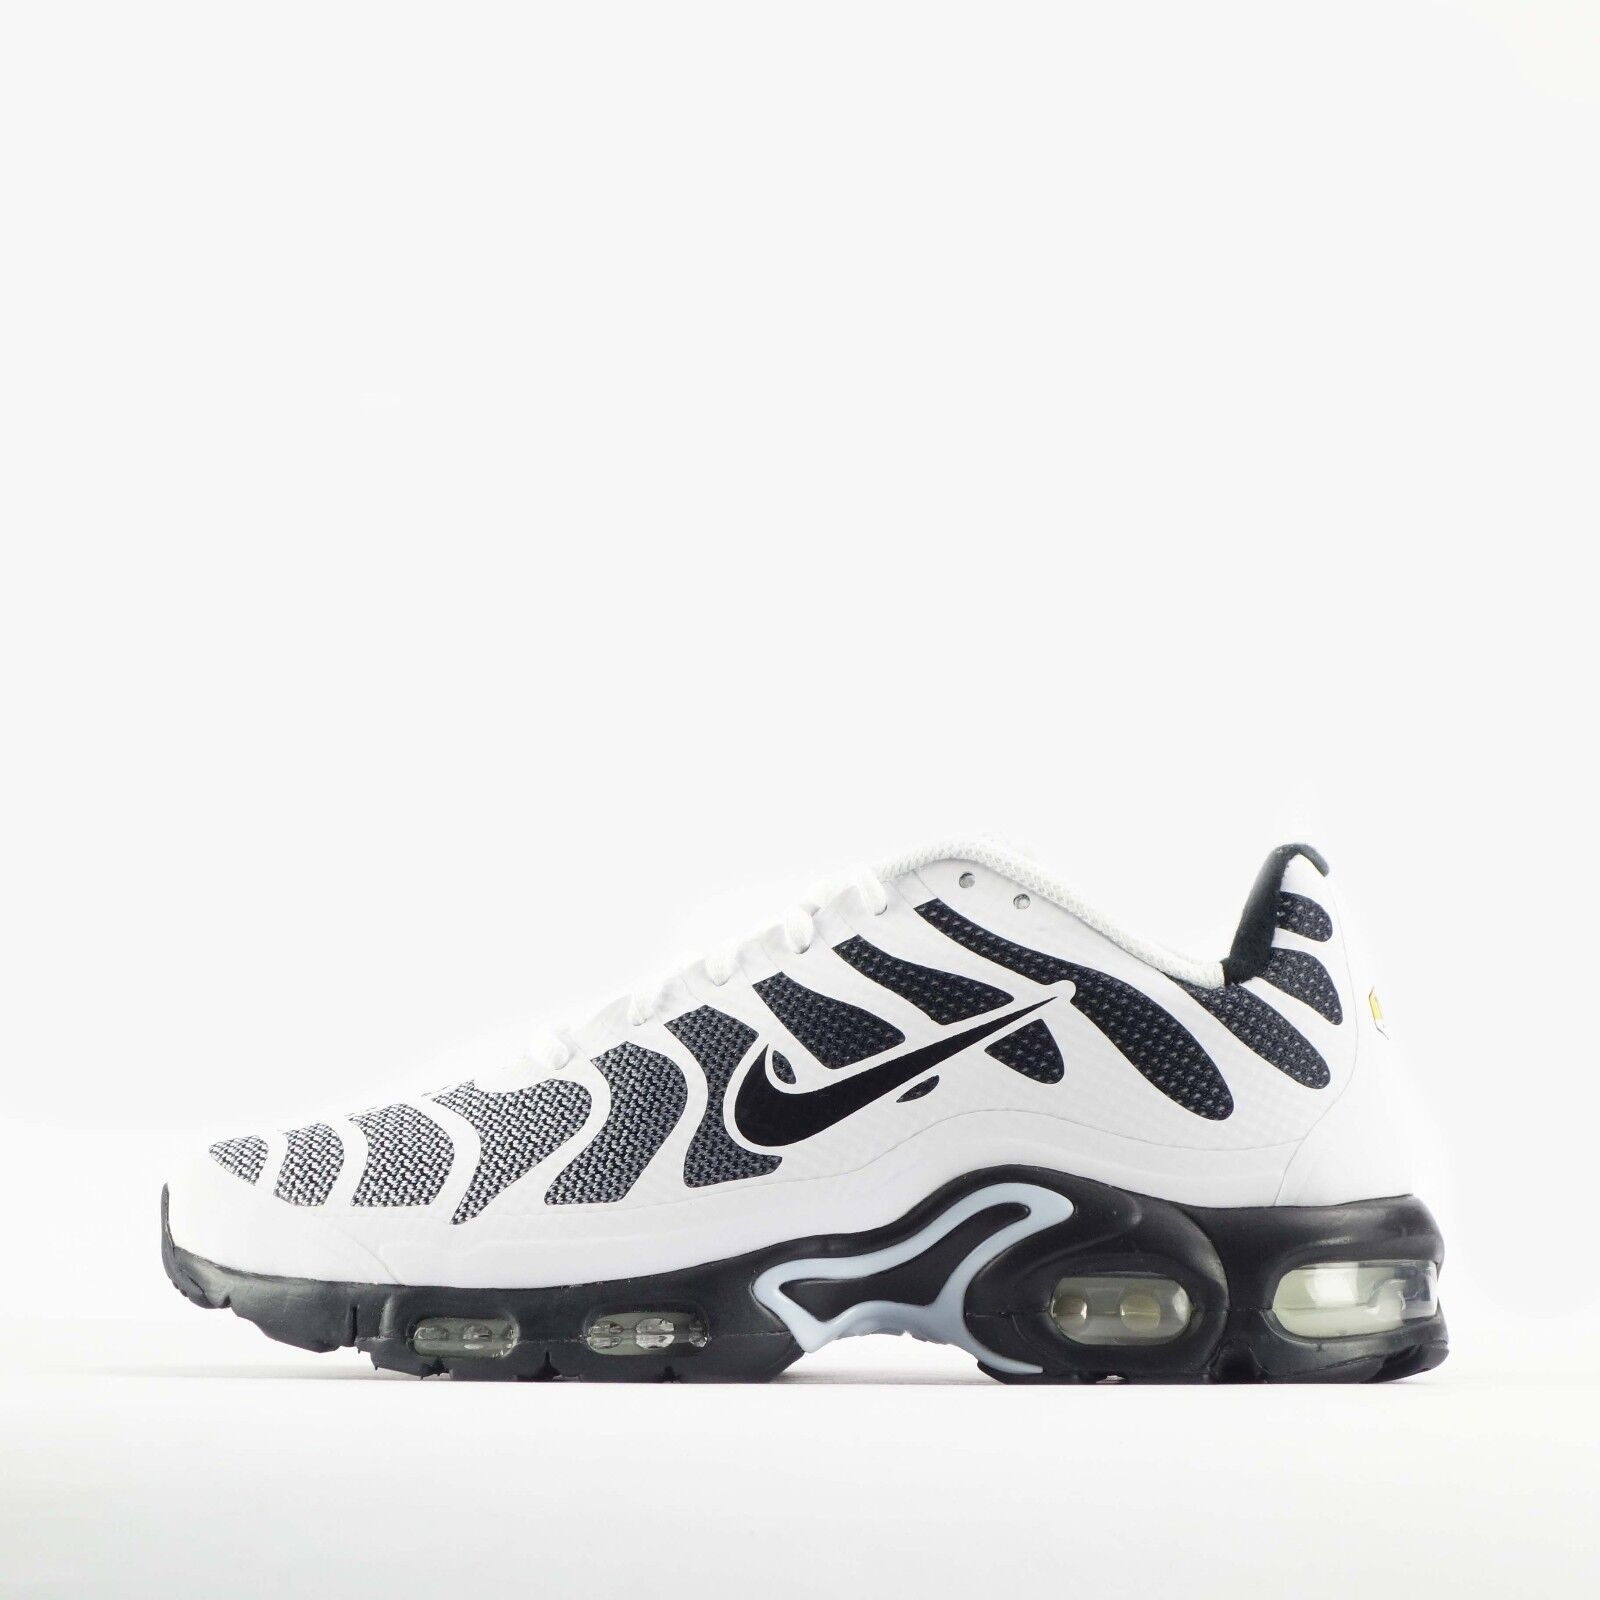 a210753933 Nike Air Max Plus Tuned TN Hyperfuse Mens Trainers Shoes White/Black ...